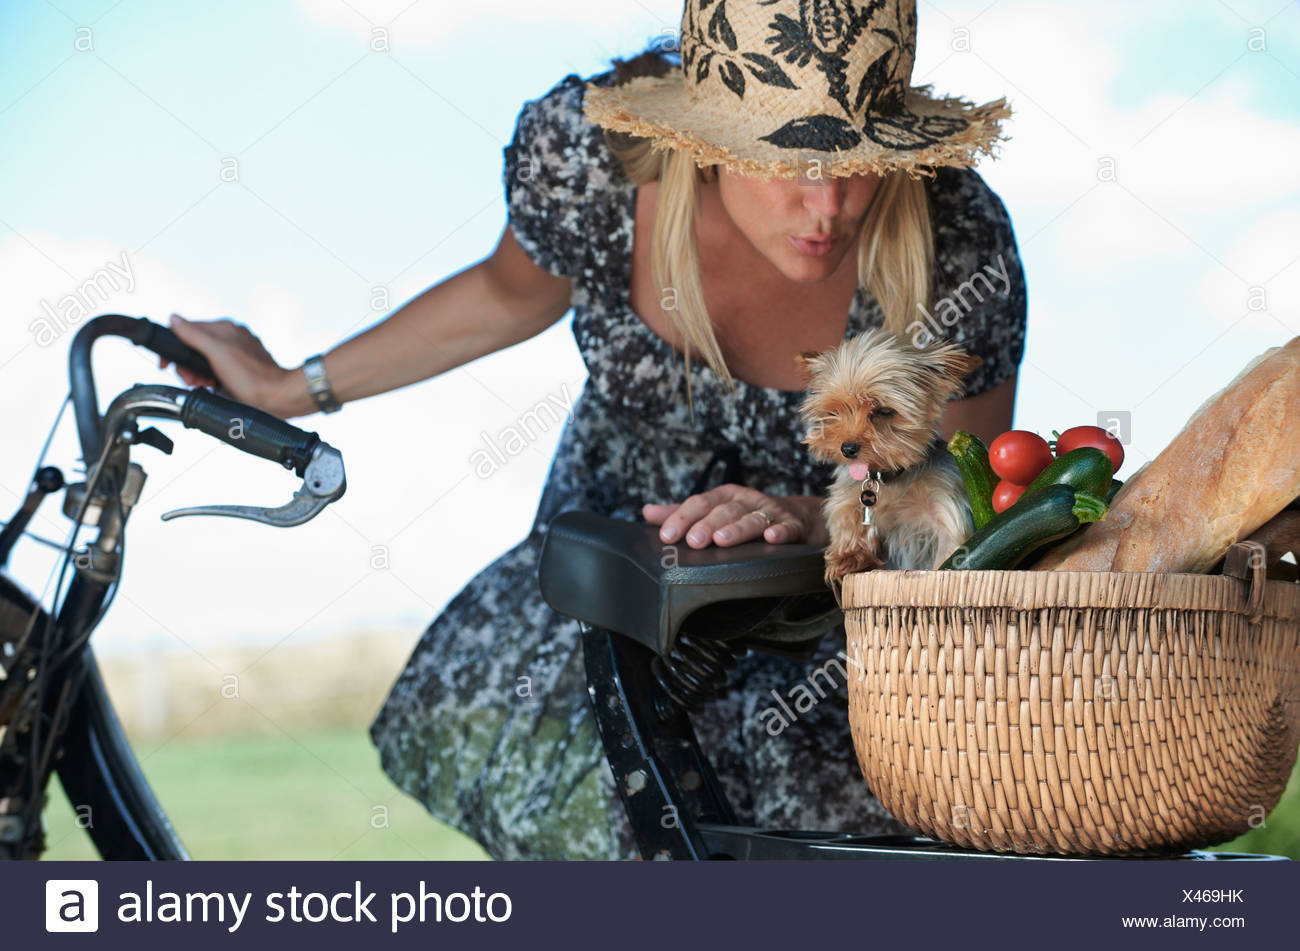 Mature woman on electric bike with dog and vegetables in basket Stock Photo